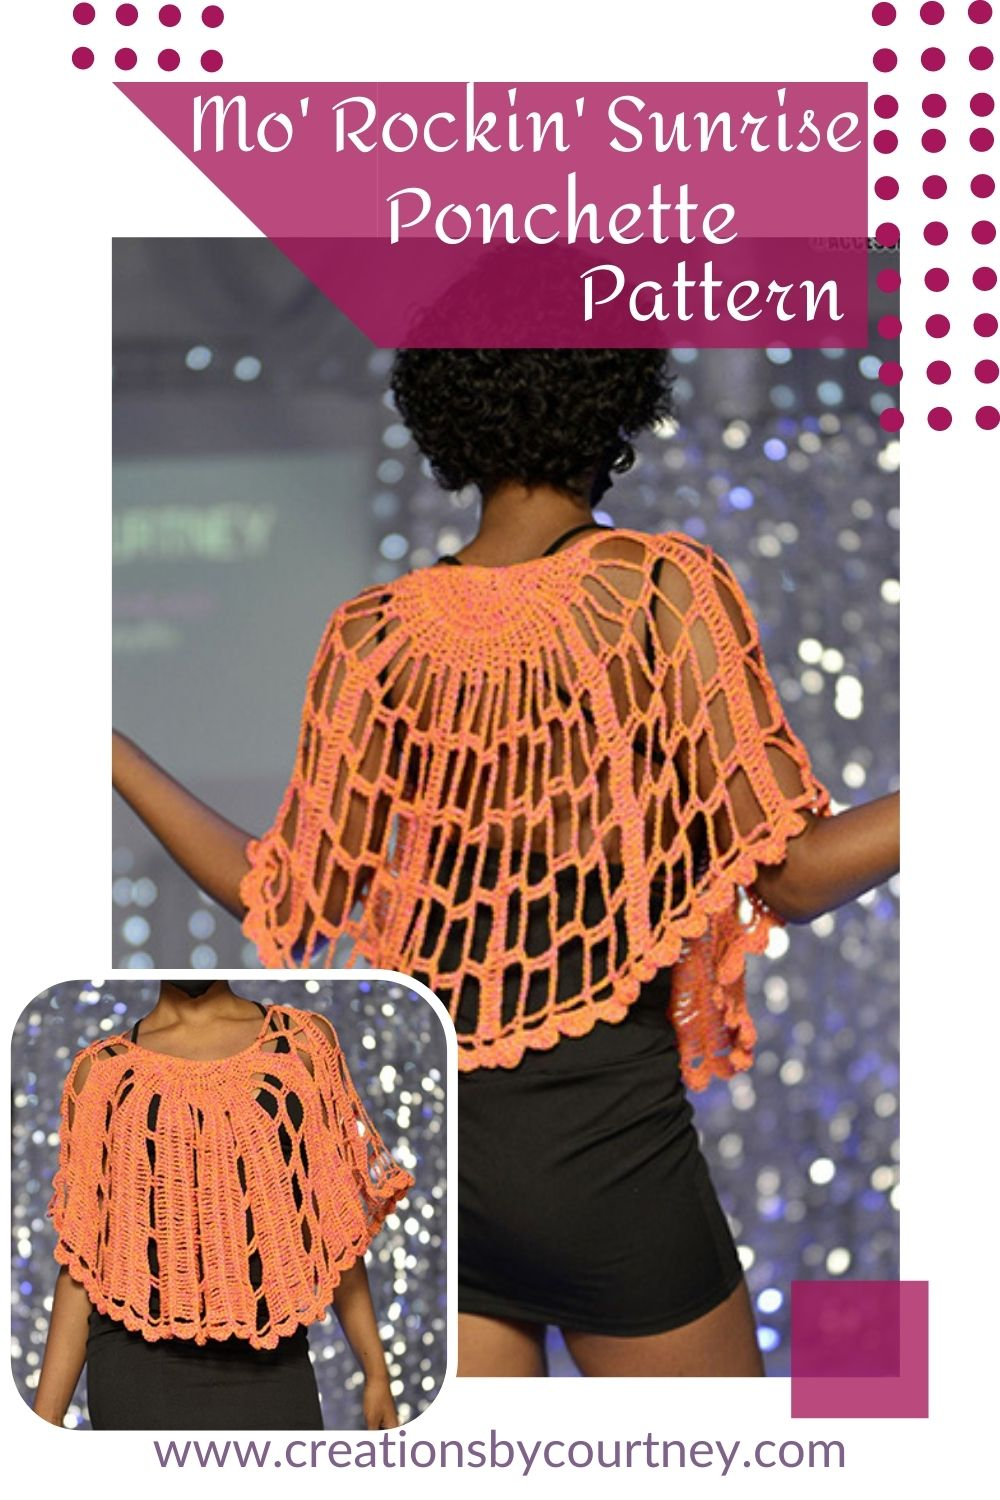 Grab your favorite DK weight yarn to make this fun to wear short poncho. The Mo'Rockin' Sunrise Ponchette offers 2 distinct sides and 3 ways to style. Enjoy making this free crochet pattern.